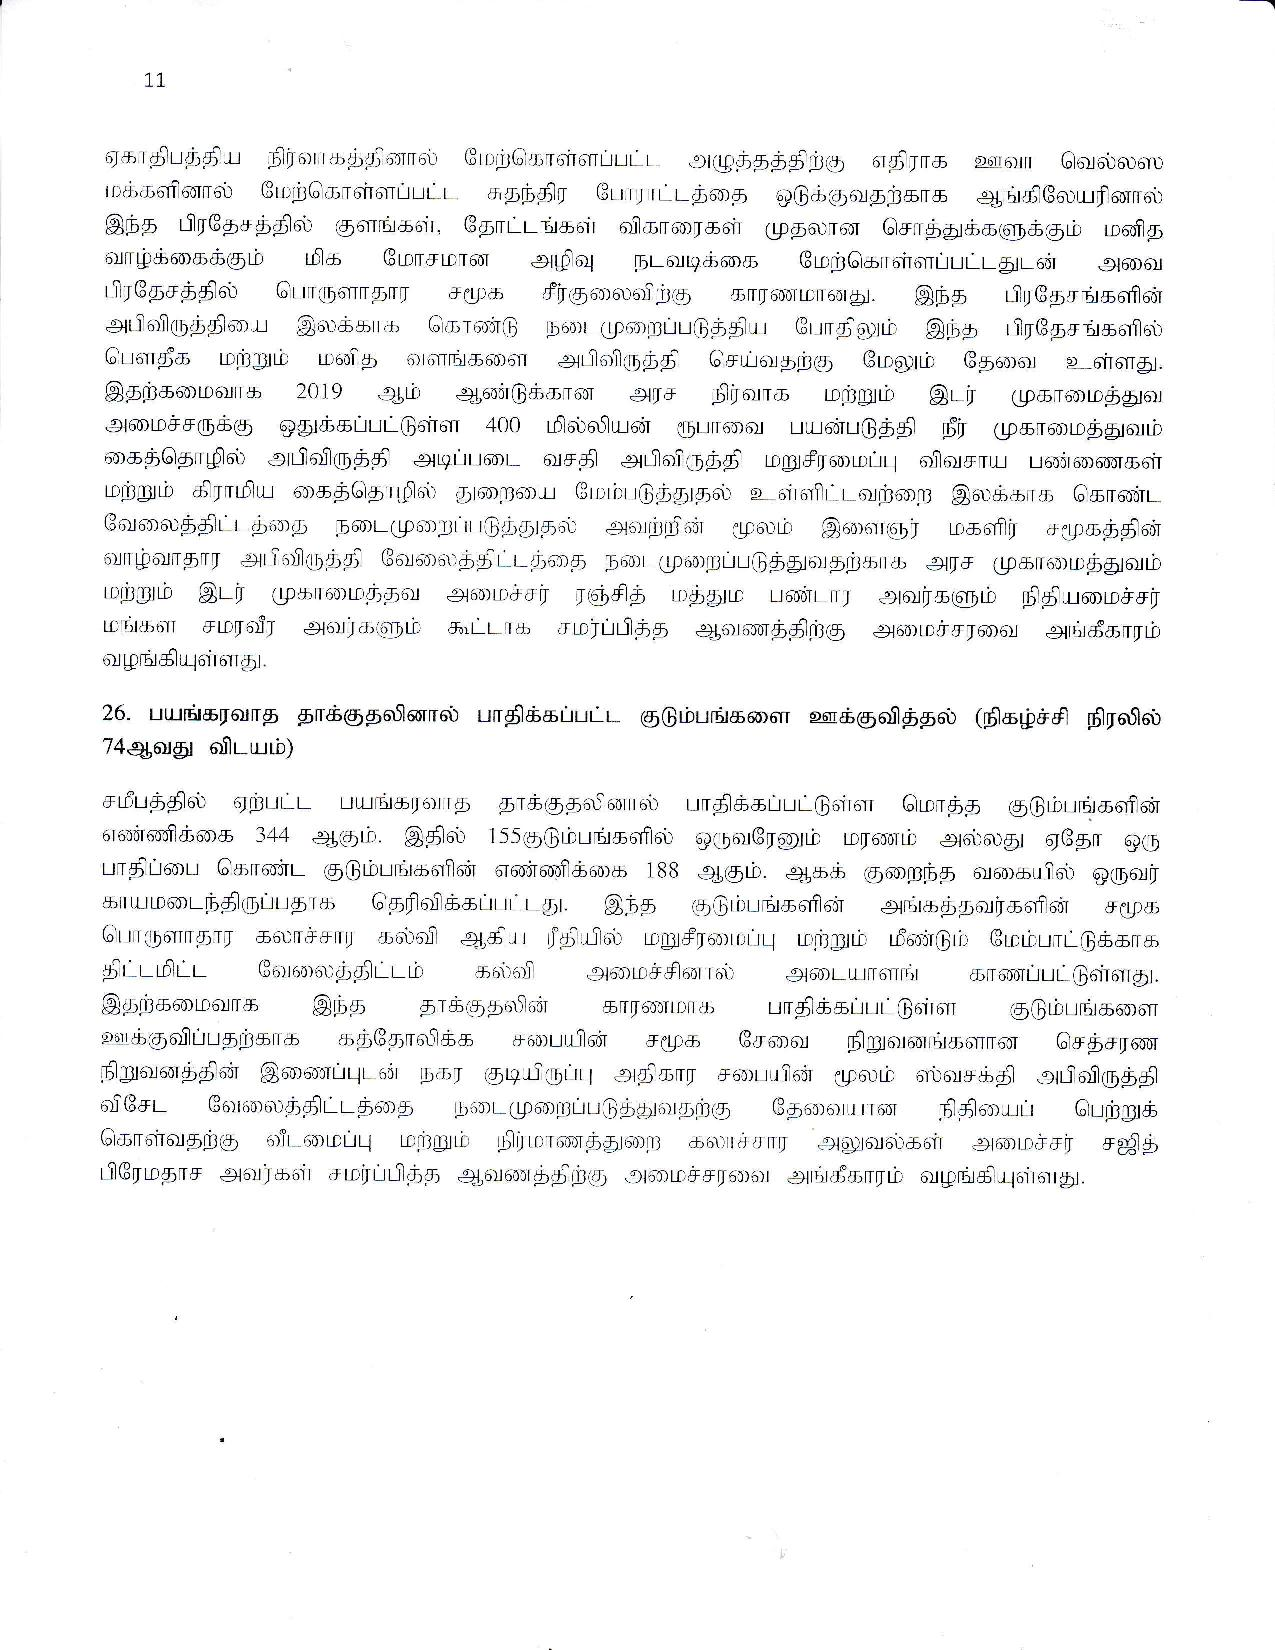 Cabinet Decision on 21.05.2019 Tamil page 012